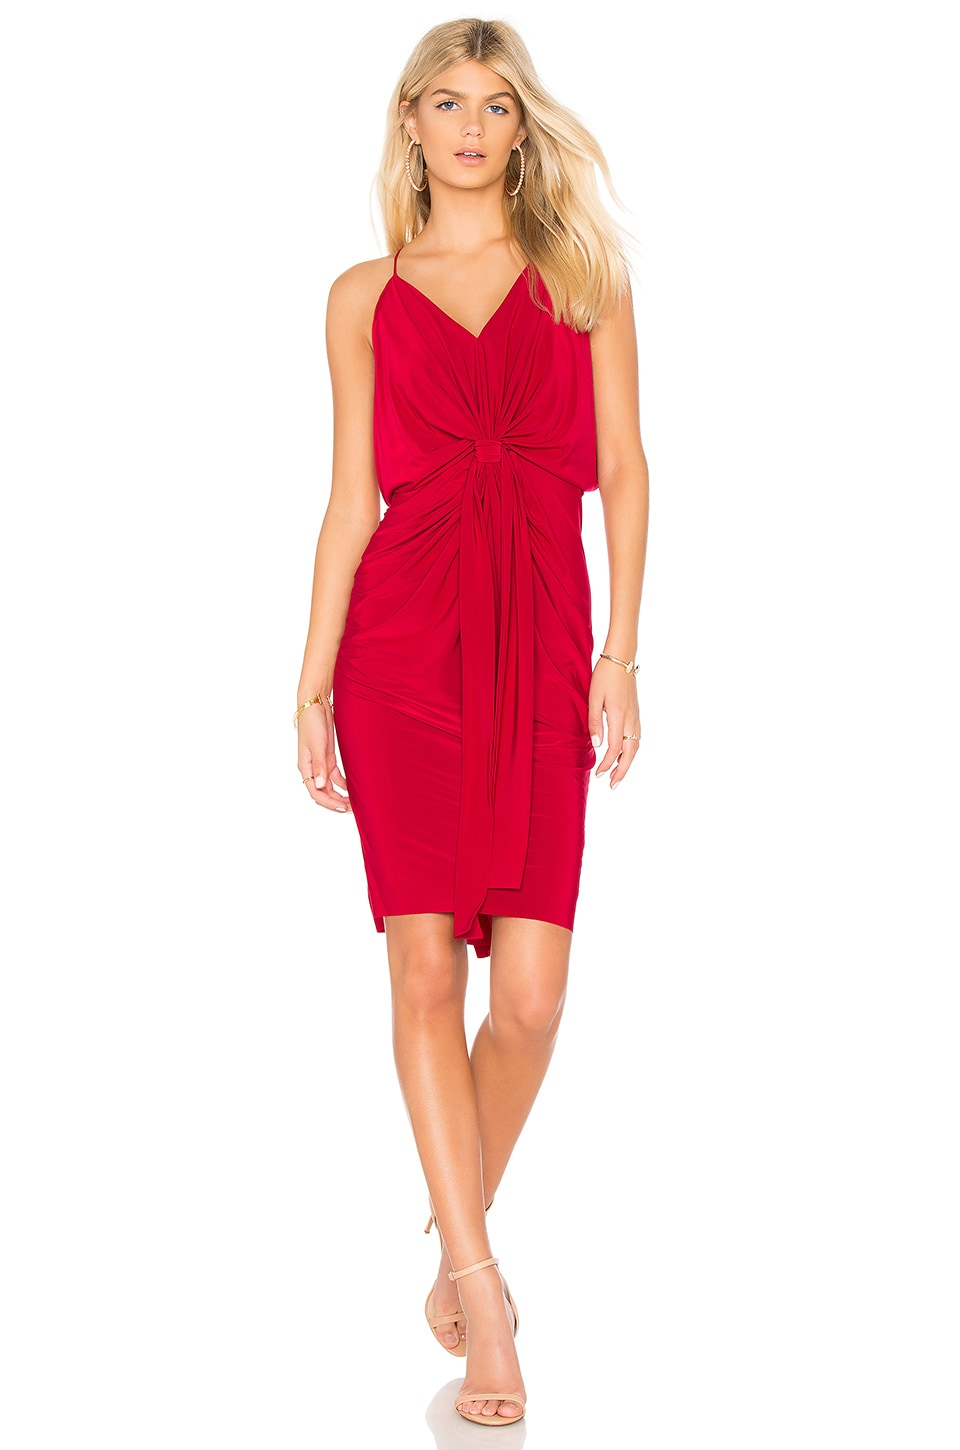 MISA Los Angeles Domino Tie Front Midi Dress in Red